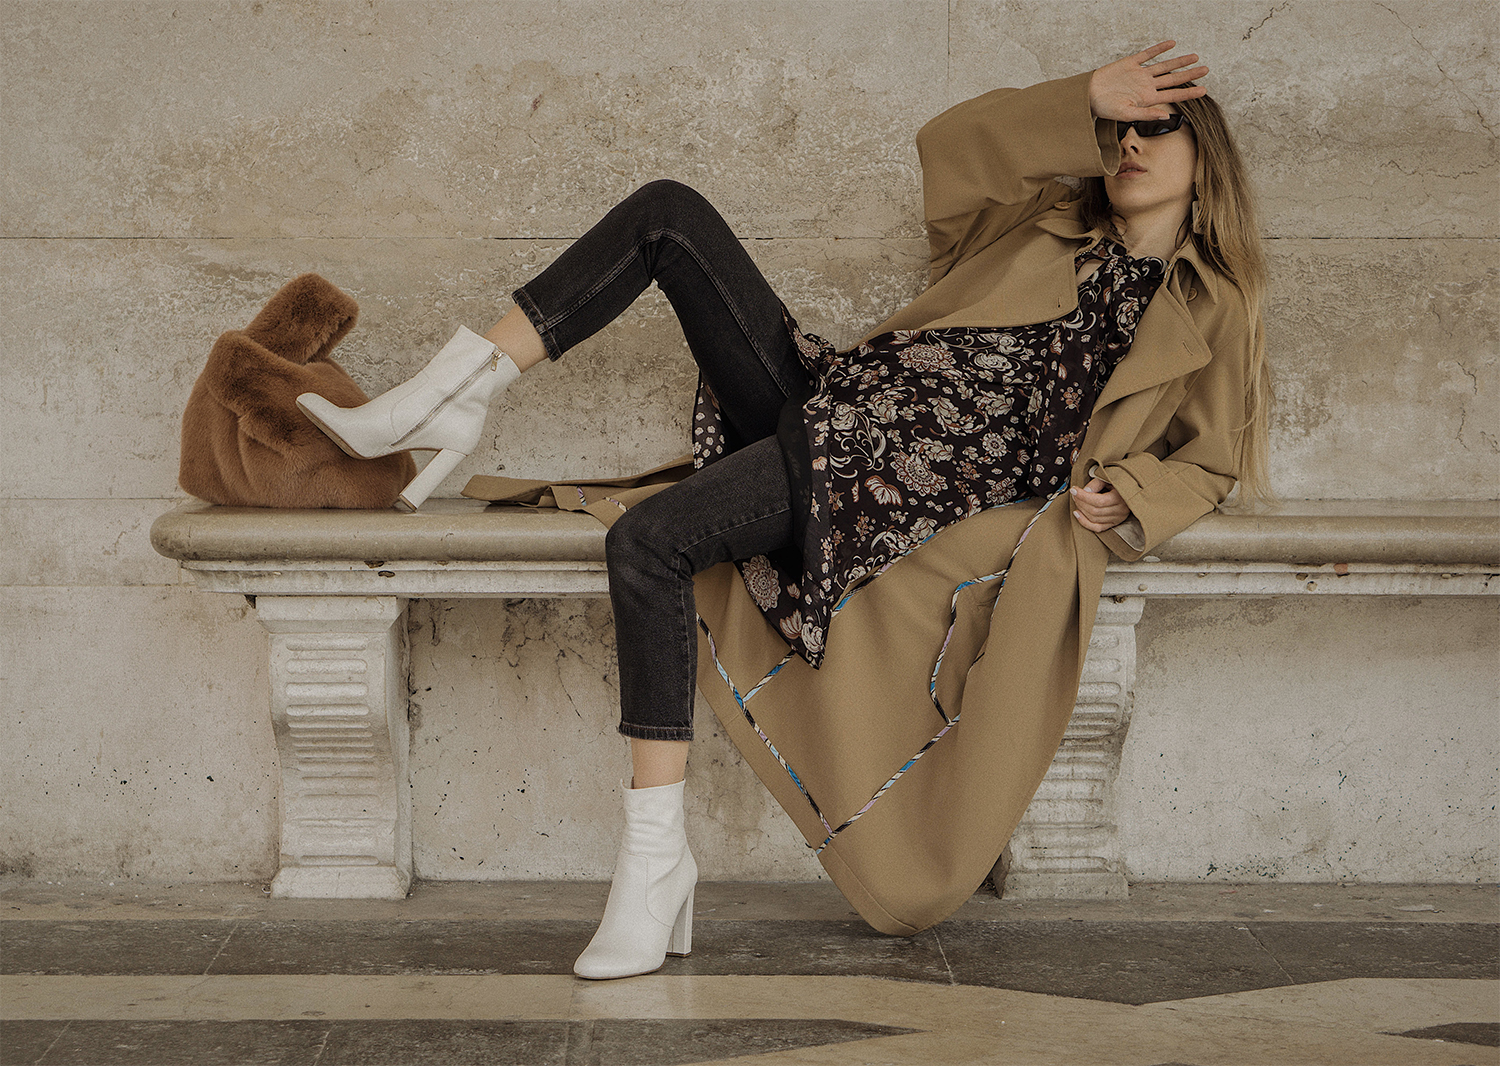 trench_coat_white_boots_dress_with_jeans_venice_italy_fur_bag_fashion_lenajuice_thewhiteocean_01